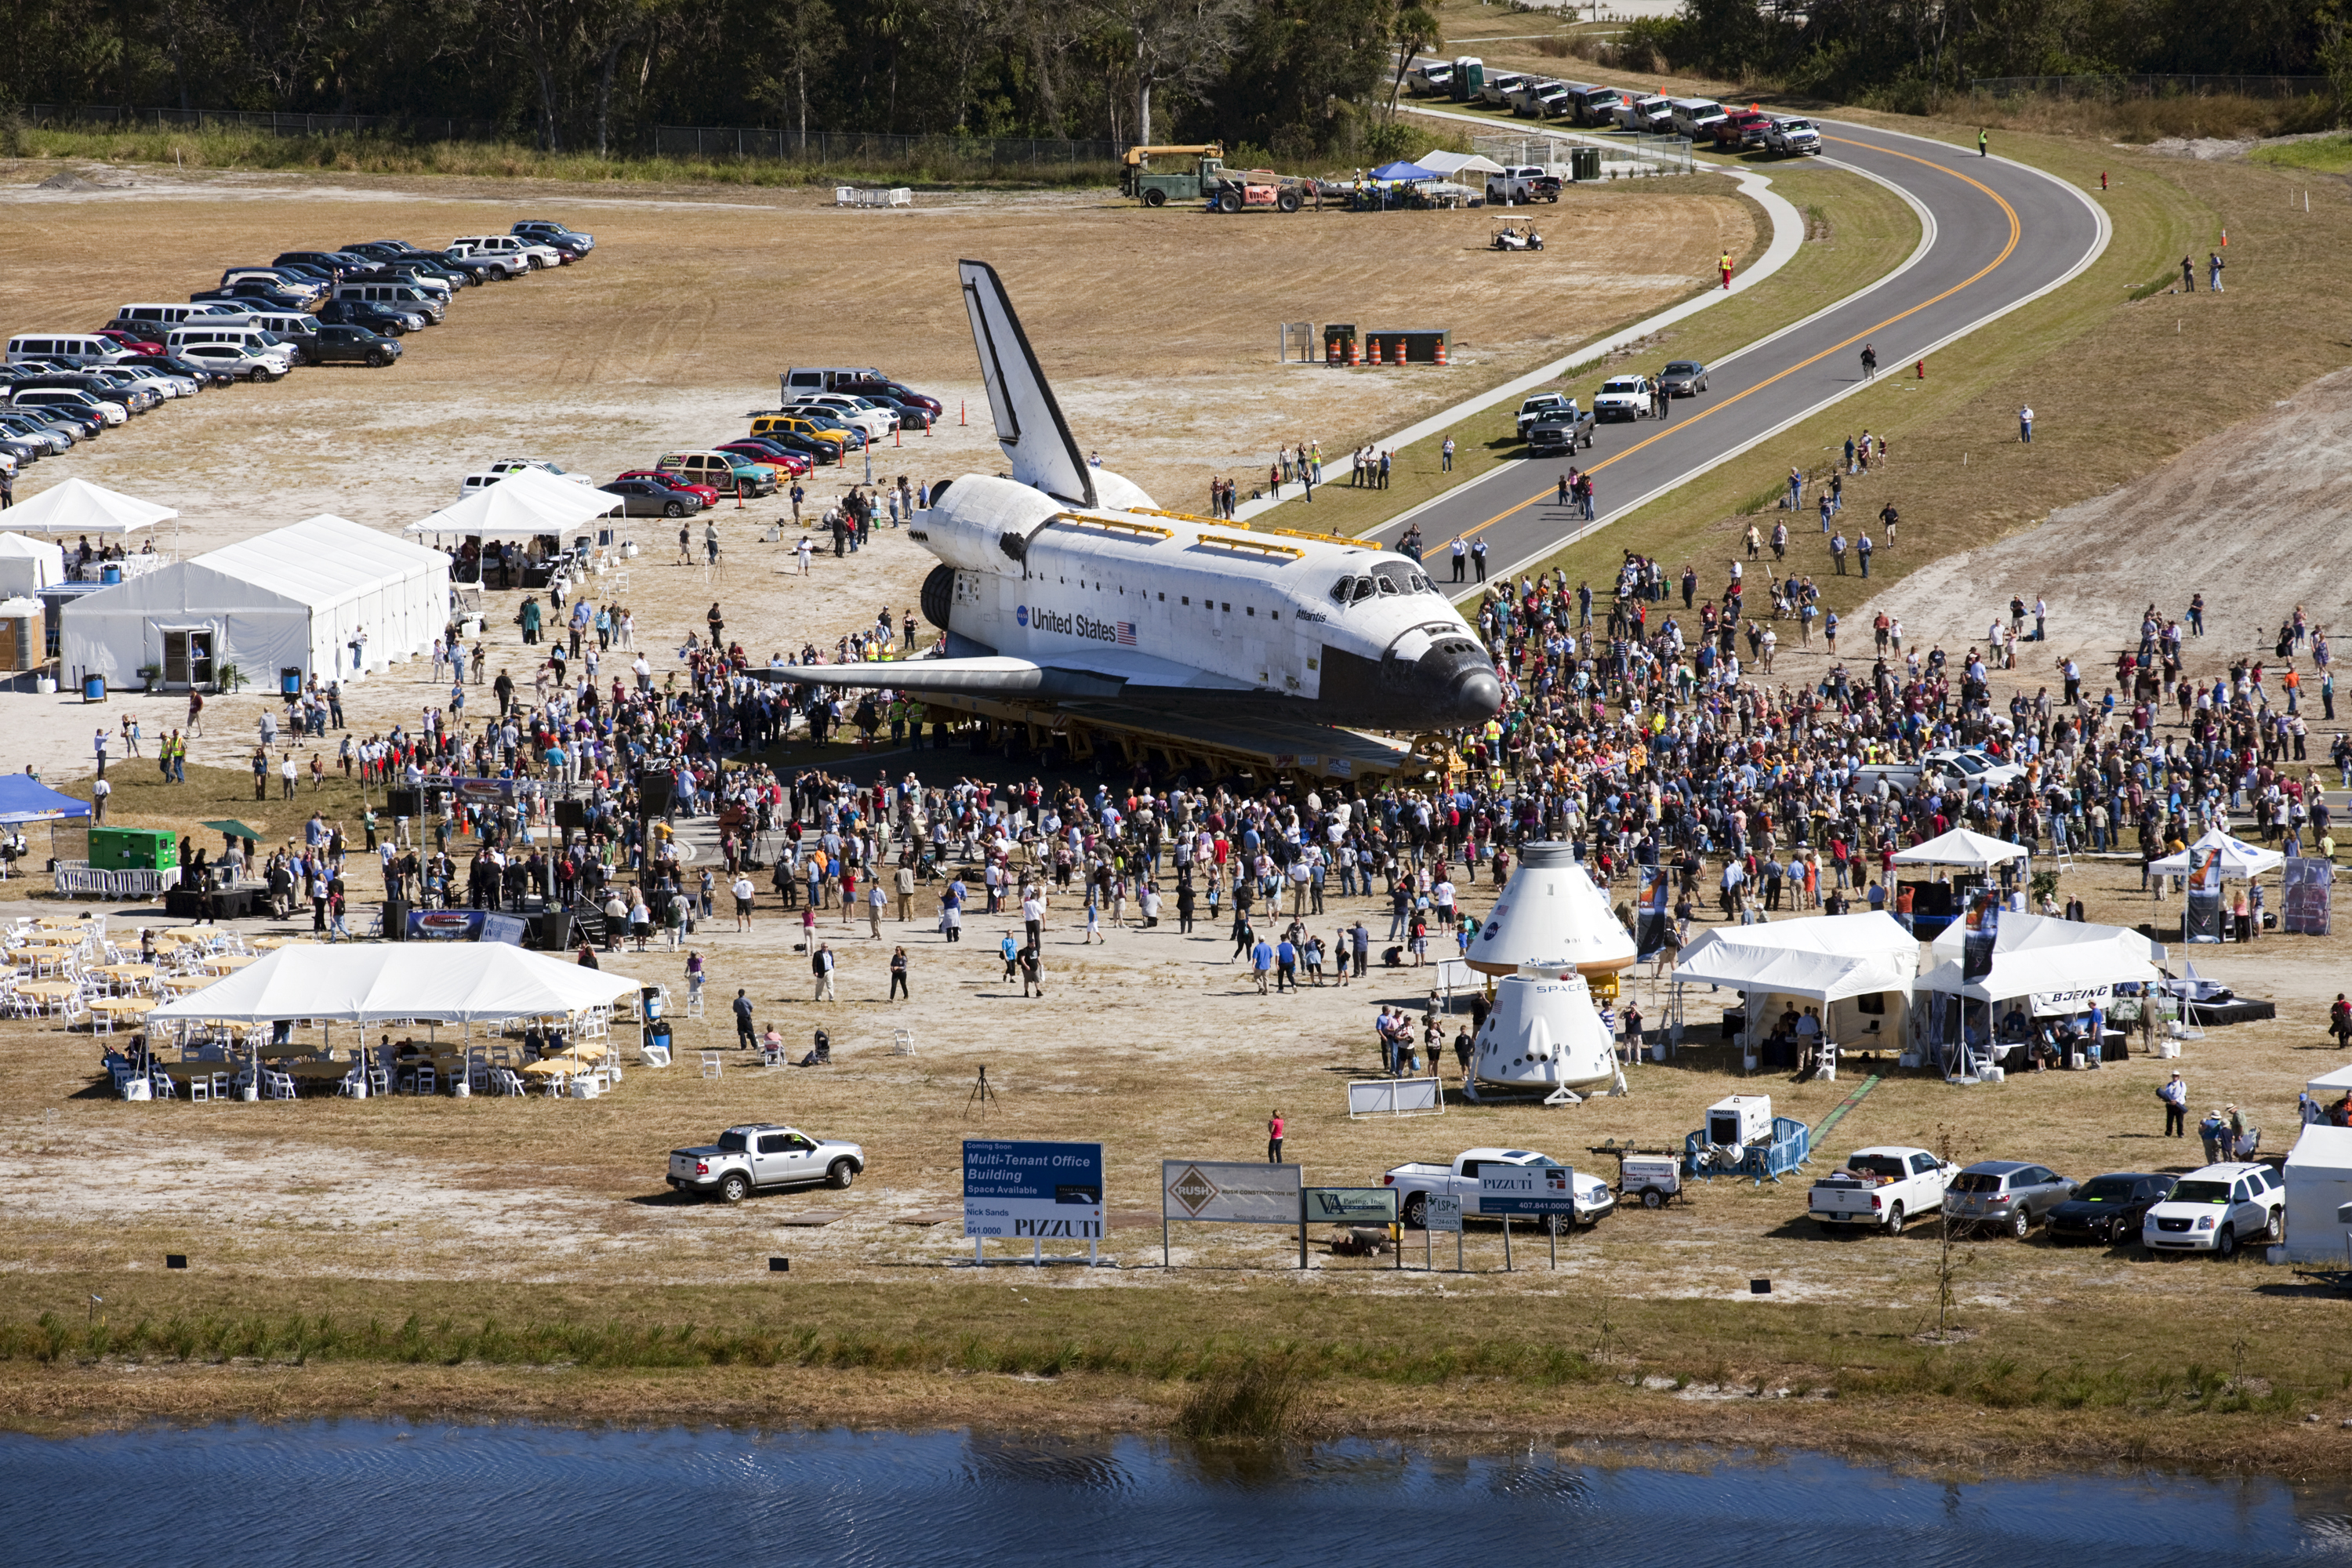 space shuttle atlantis north lawn launch viewing - photo #5